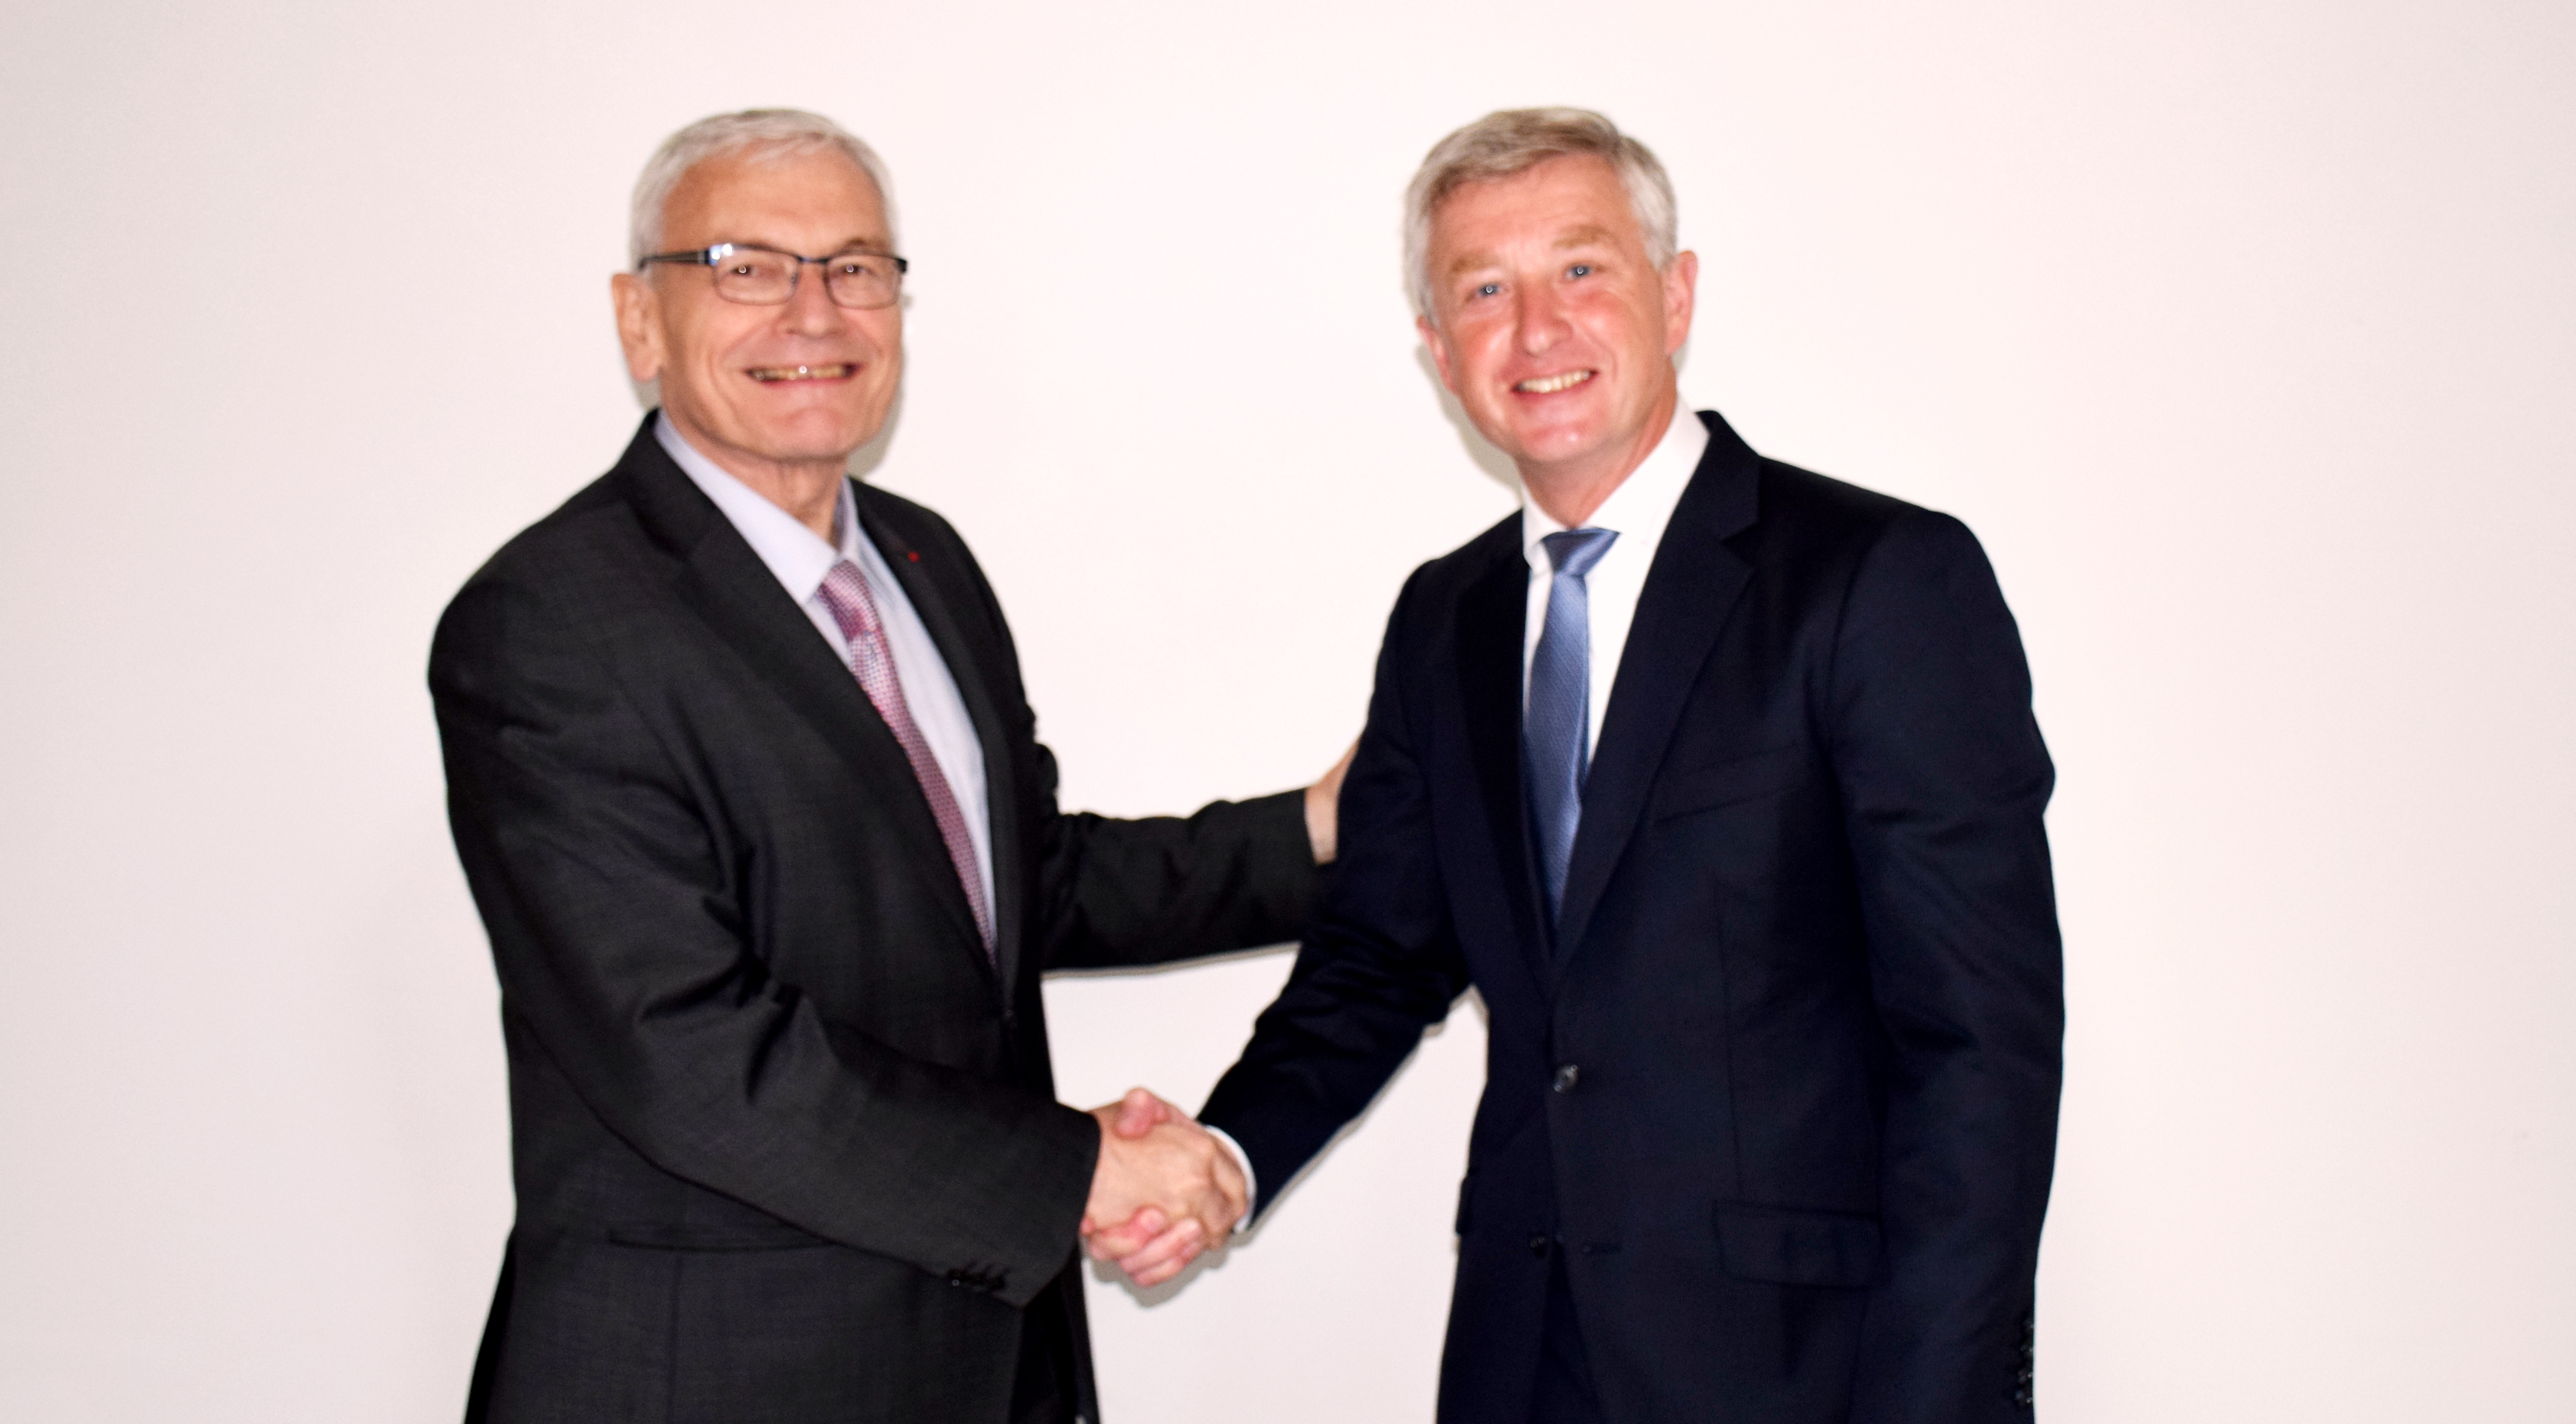 ERTICO elect Cees De Wijs as new Chairman at the General Assembly held in Brussels